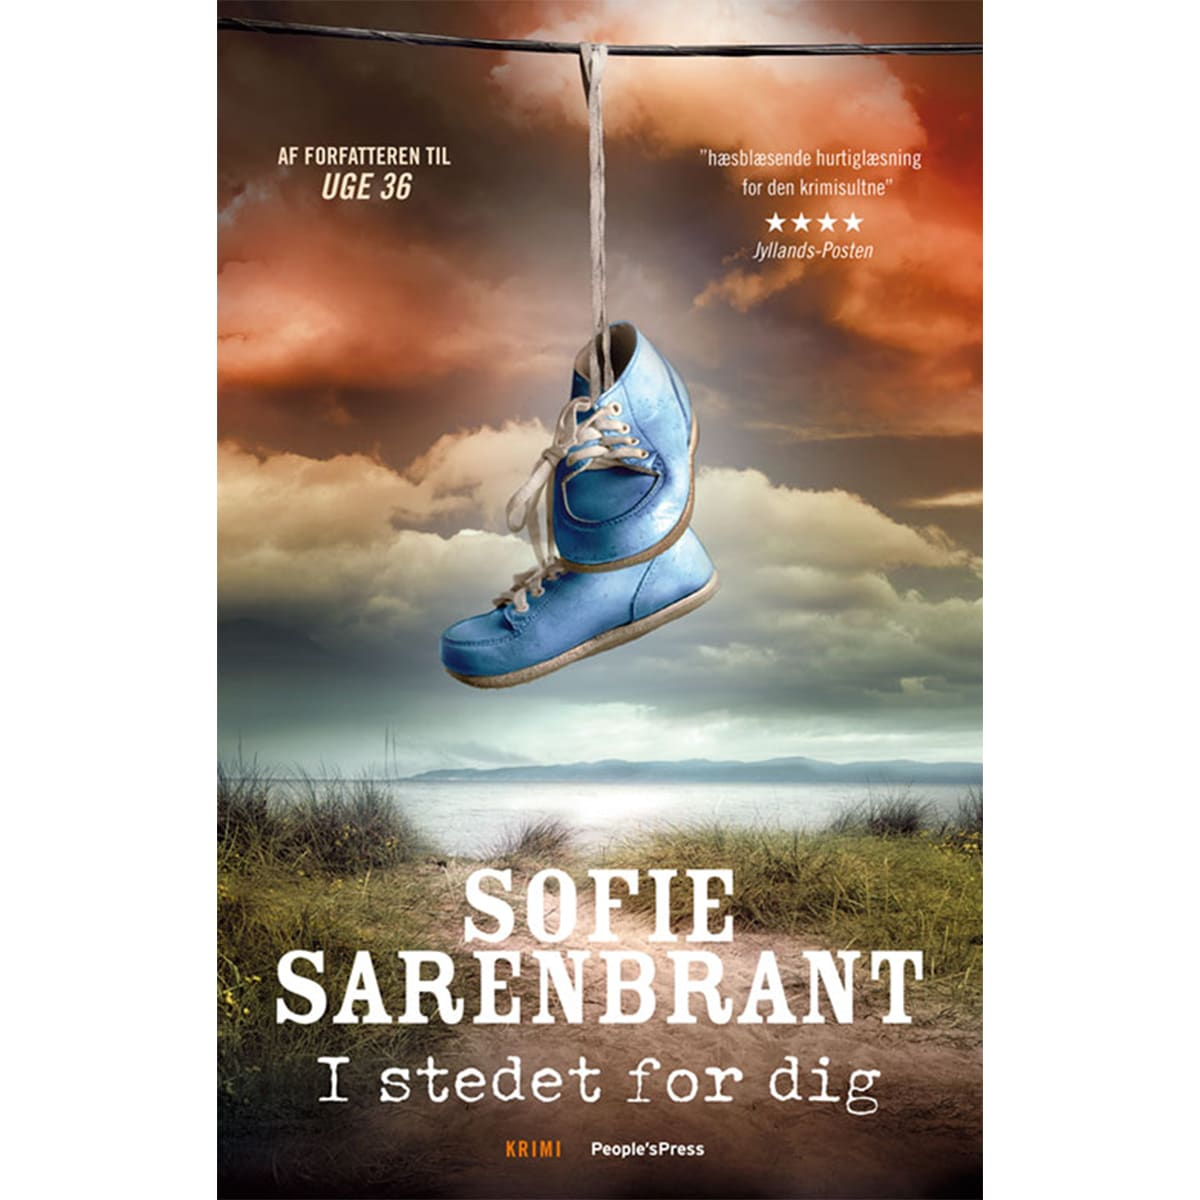 As Sofie Sarenbrant